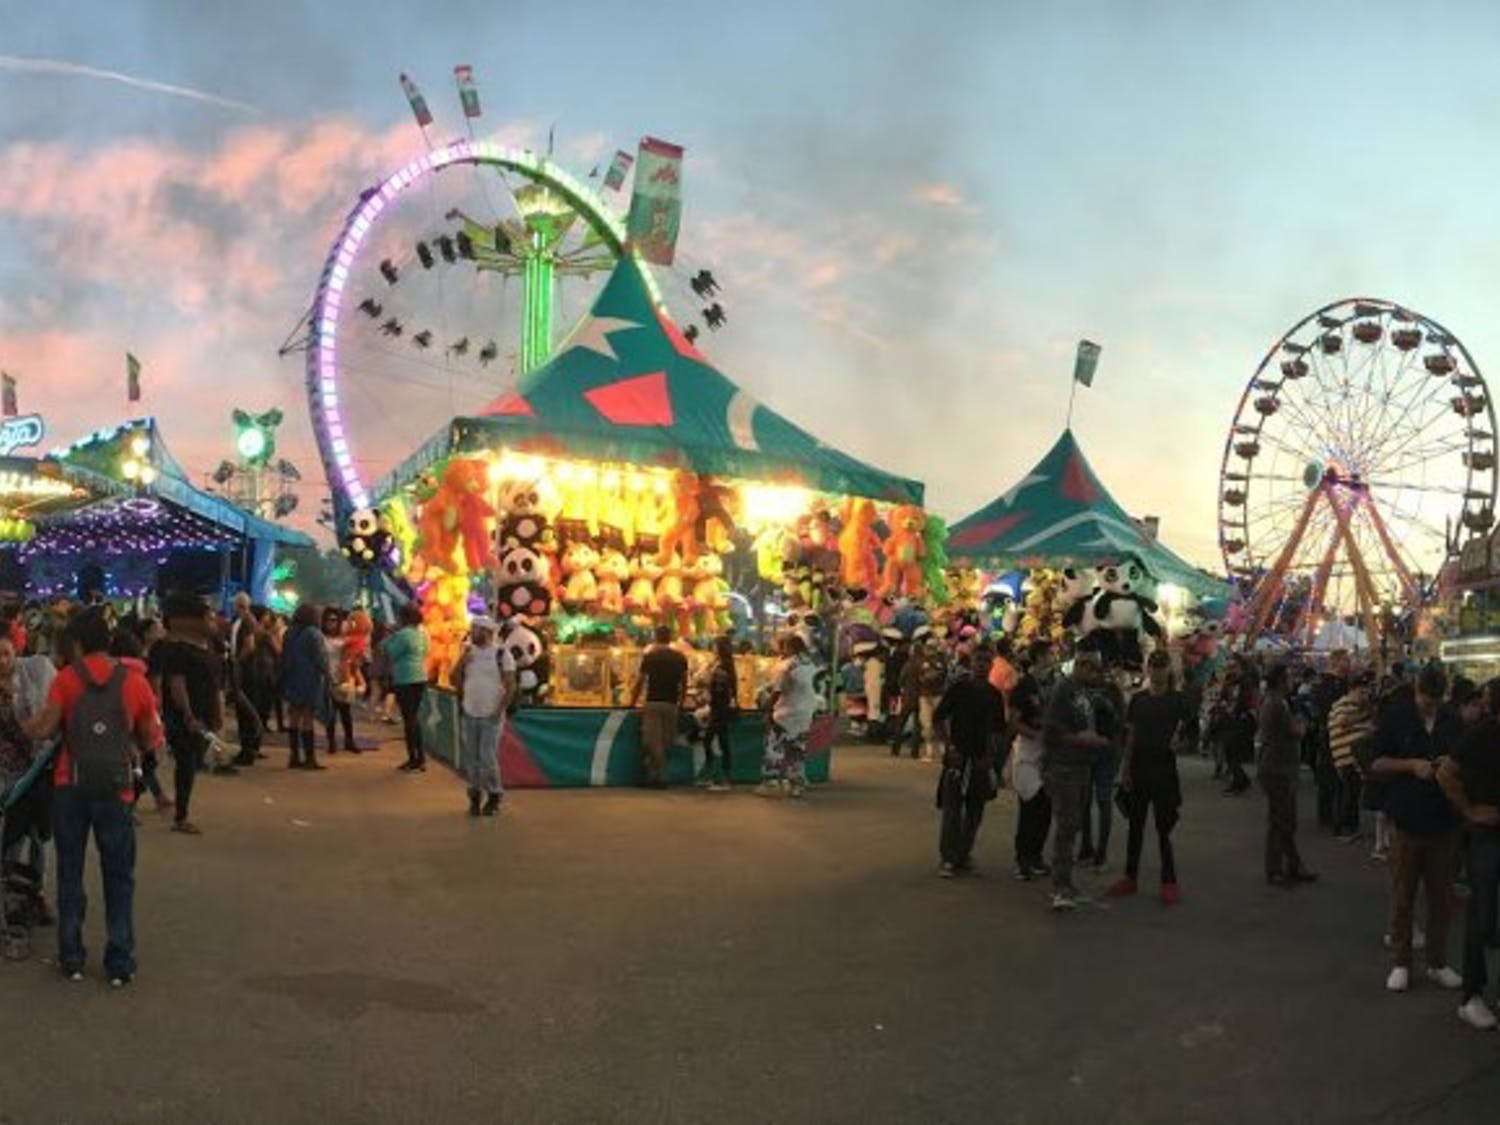 The NC State Fair is in Raleigh from October 13-23.